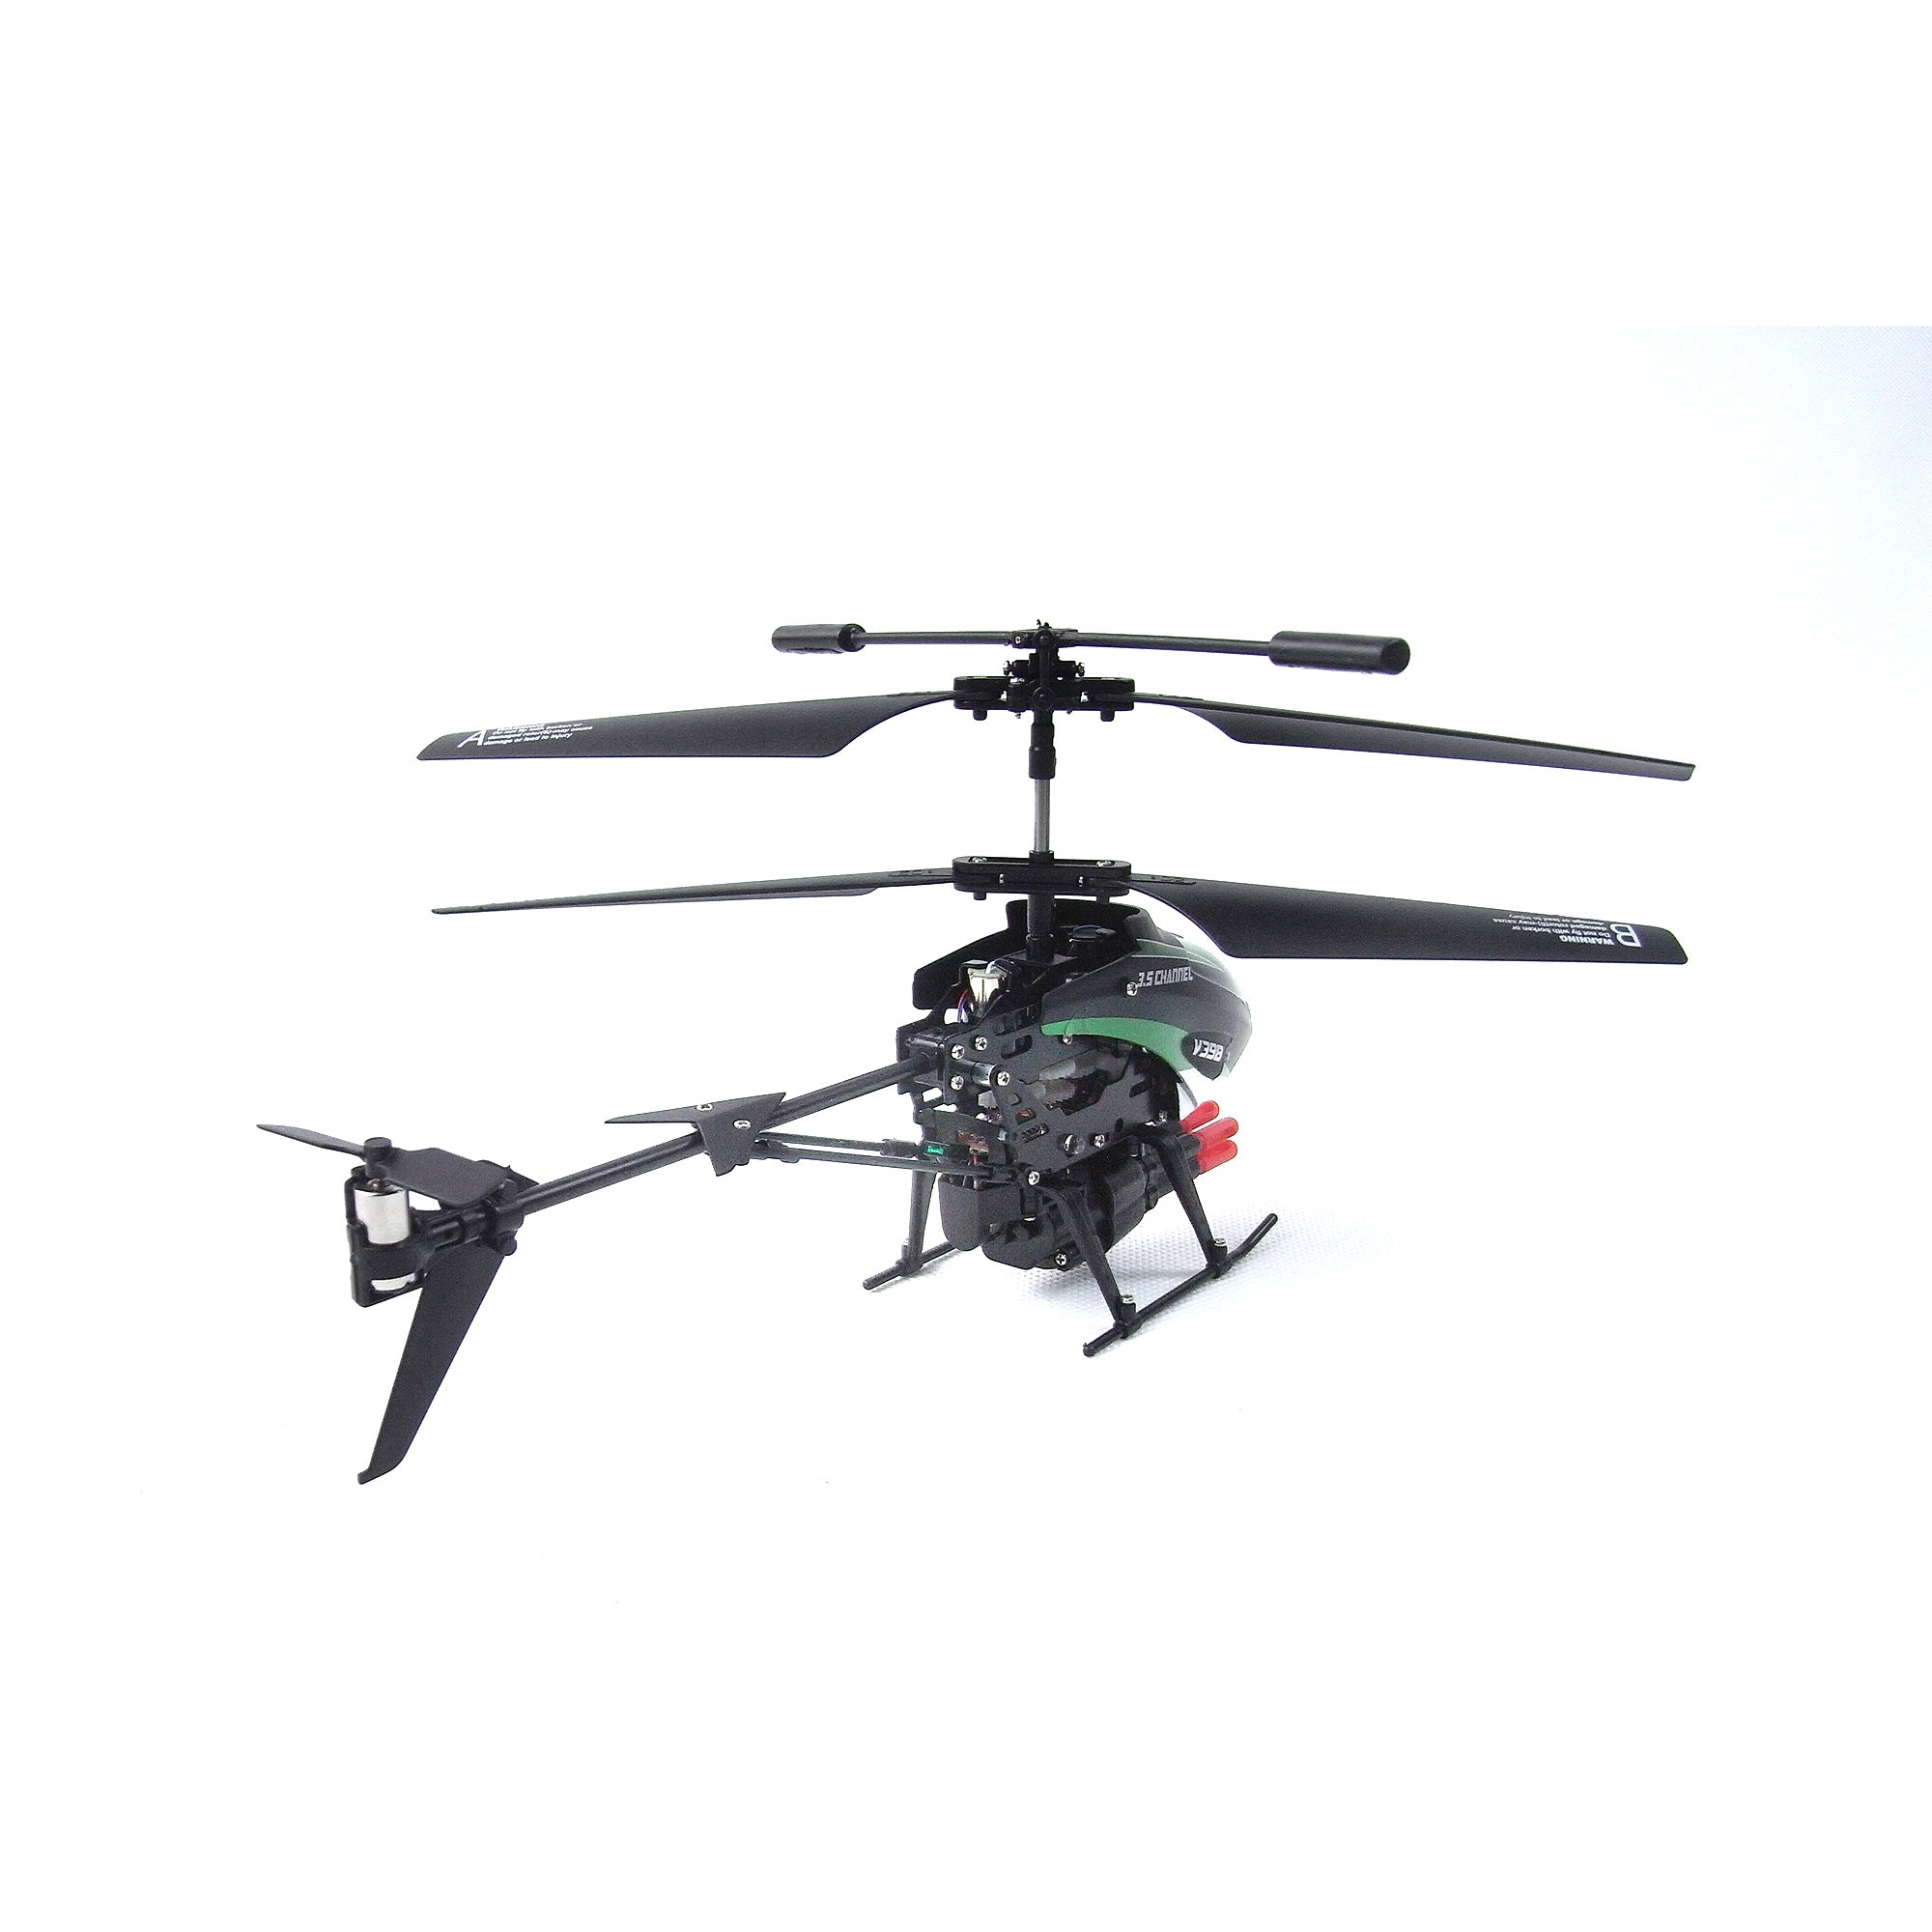 GizmoVine Wltoys V398 RC Helicopter 3.5CH Built-in